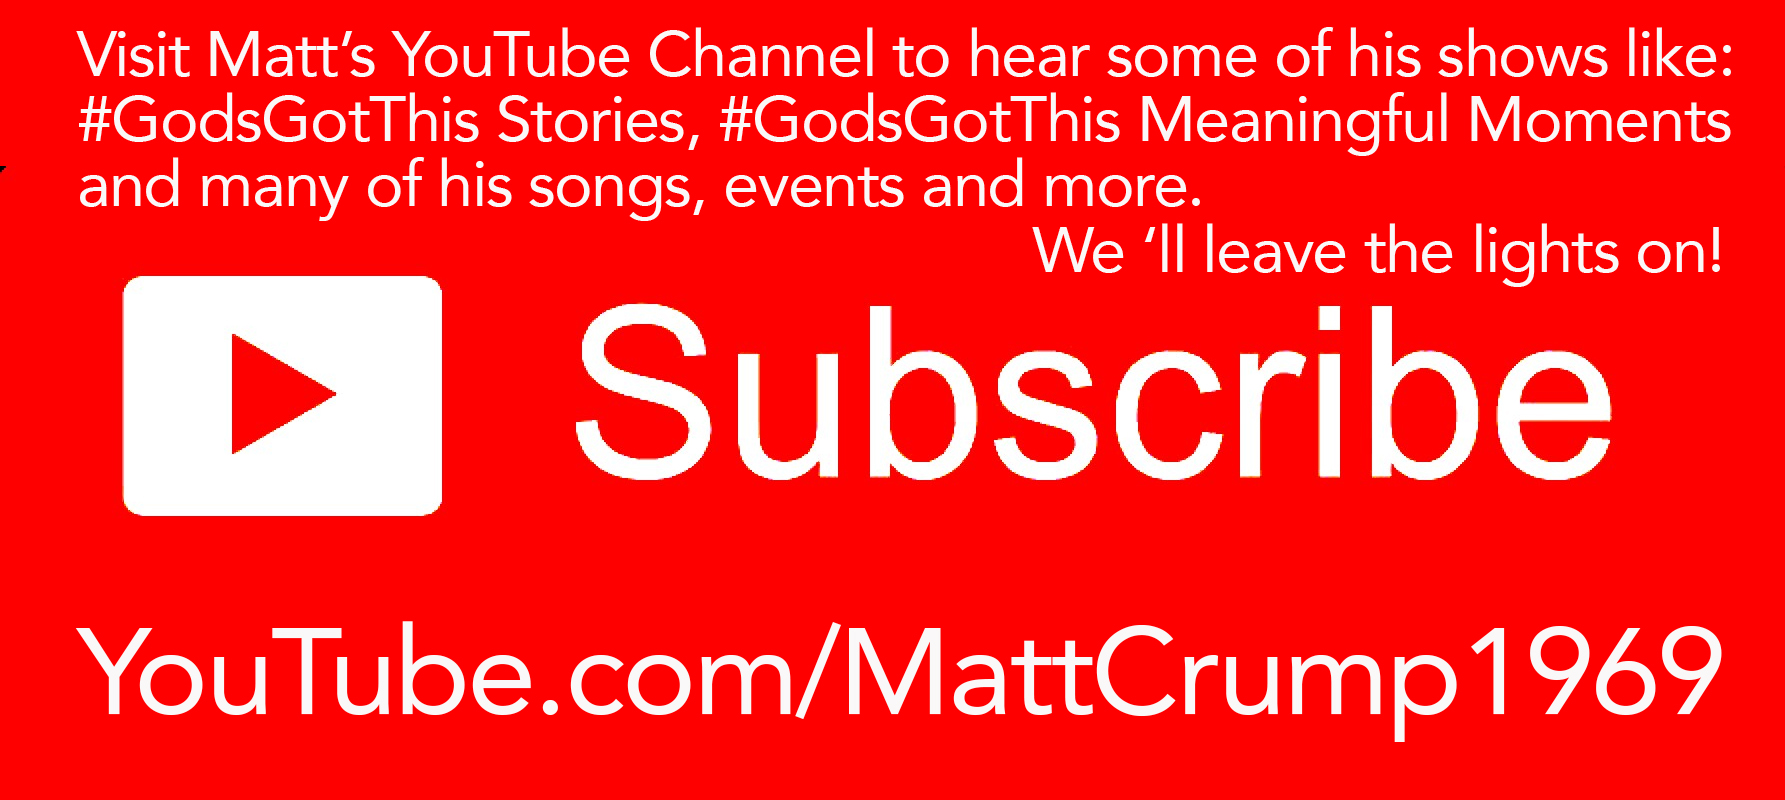 Visit our    YouTube Channel    and please Subscribe while there. Thanks!